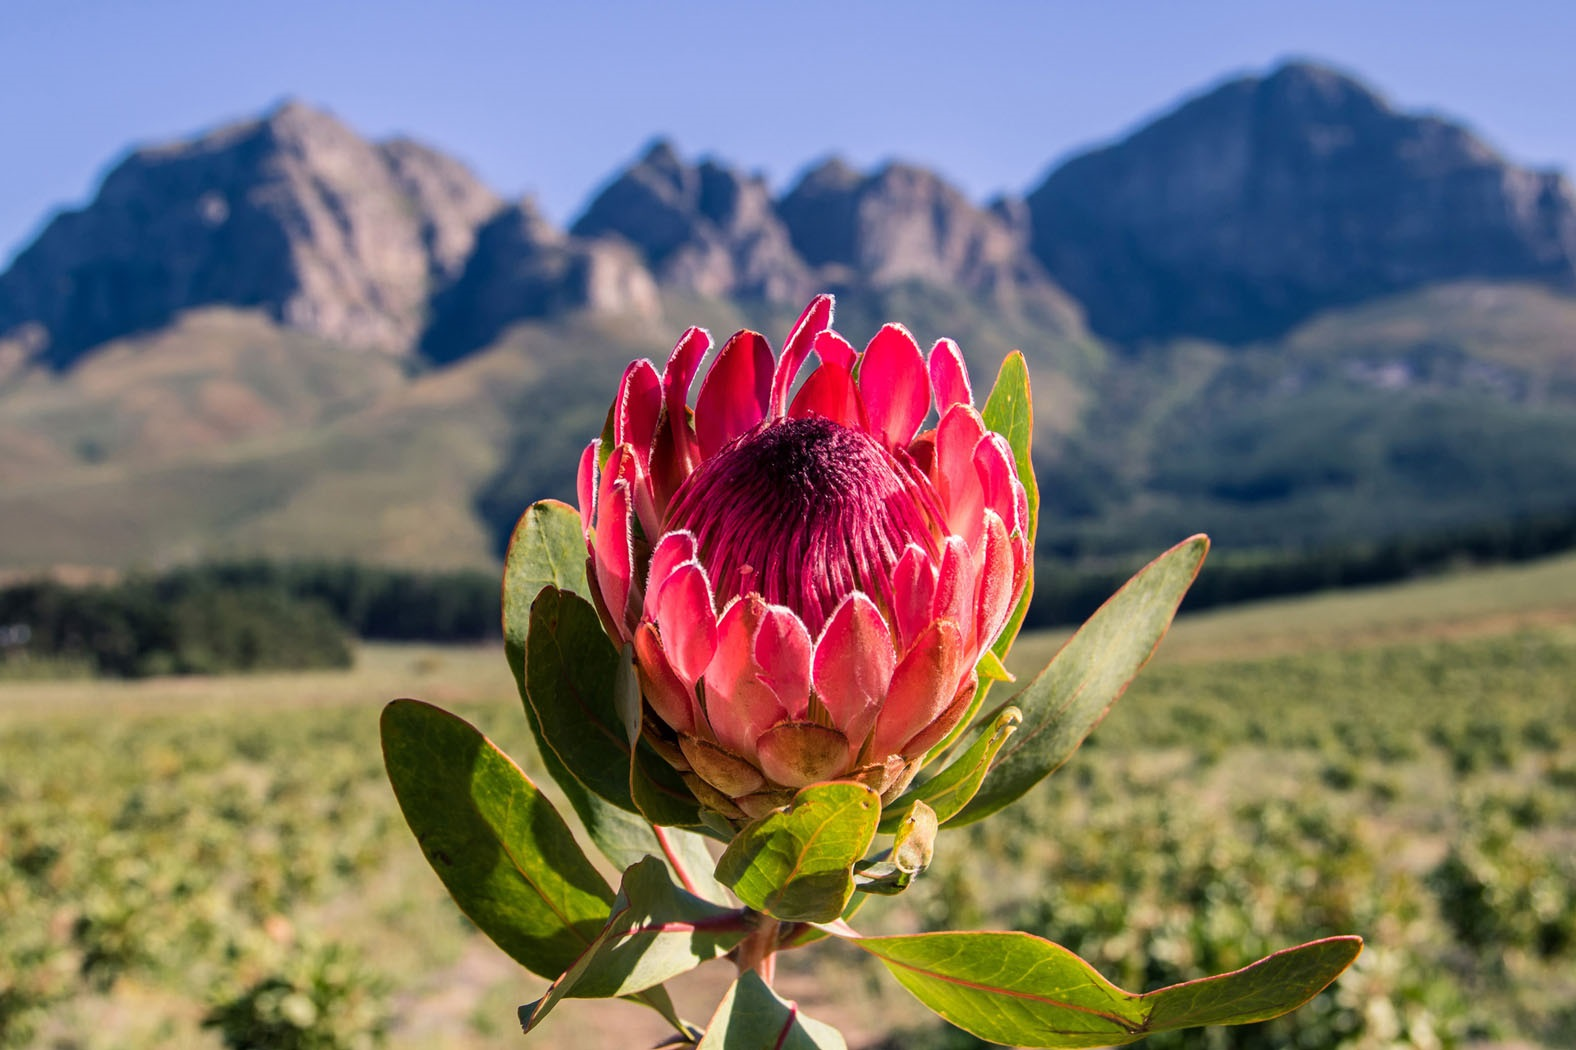 Summer Winners Of #seasonsoflourensford Instagram Comp Announced photo